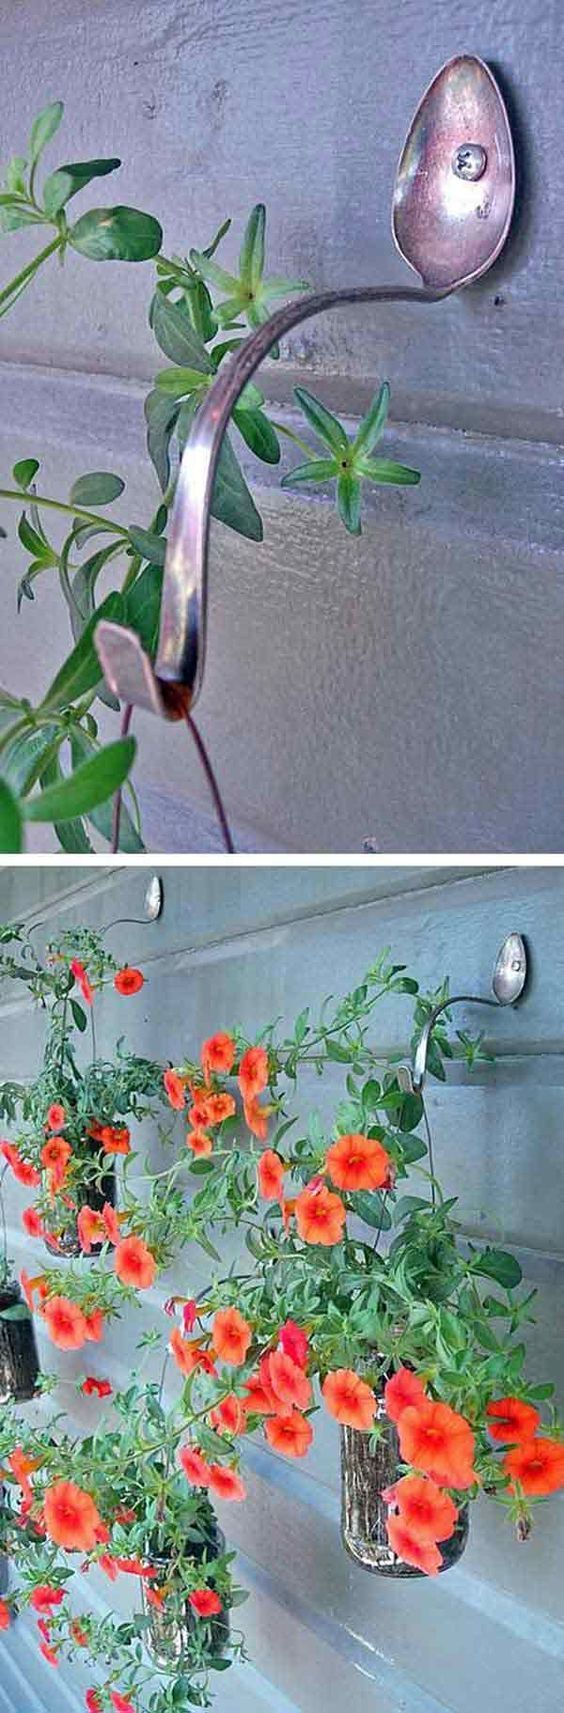 DIY Spoon Planter Hangers: A fun DIY project for your backyard! Recycle these jars and old spoons to make these gorgeous hanging planters> They look so perfect in your front porch or backyard!